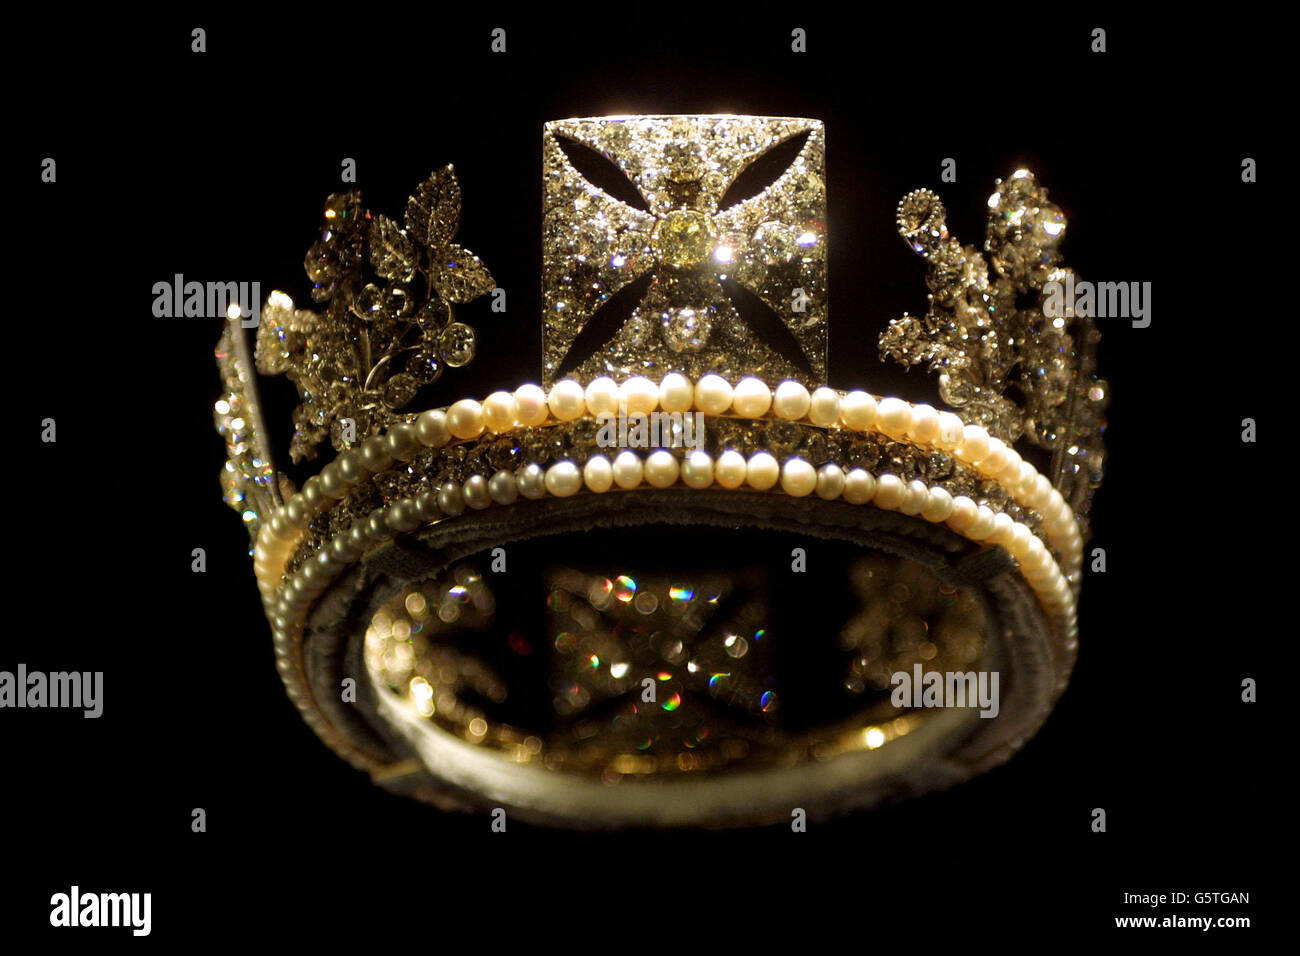 priceless on blue beauties link glorious was article jubilee s king all this necklace golden m brazil femail victoria missing in queen image have of stories glittering beautiful lavish fascinating commissioned tell necklaces wedding a gift occasion the canute diamond to